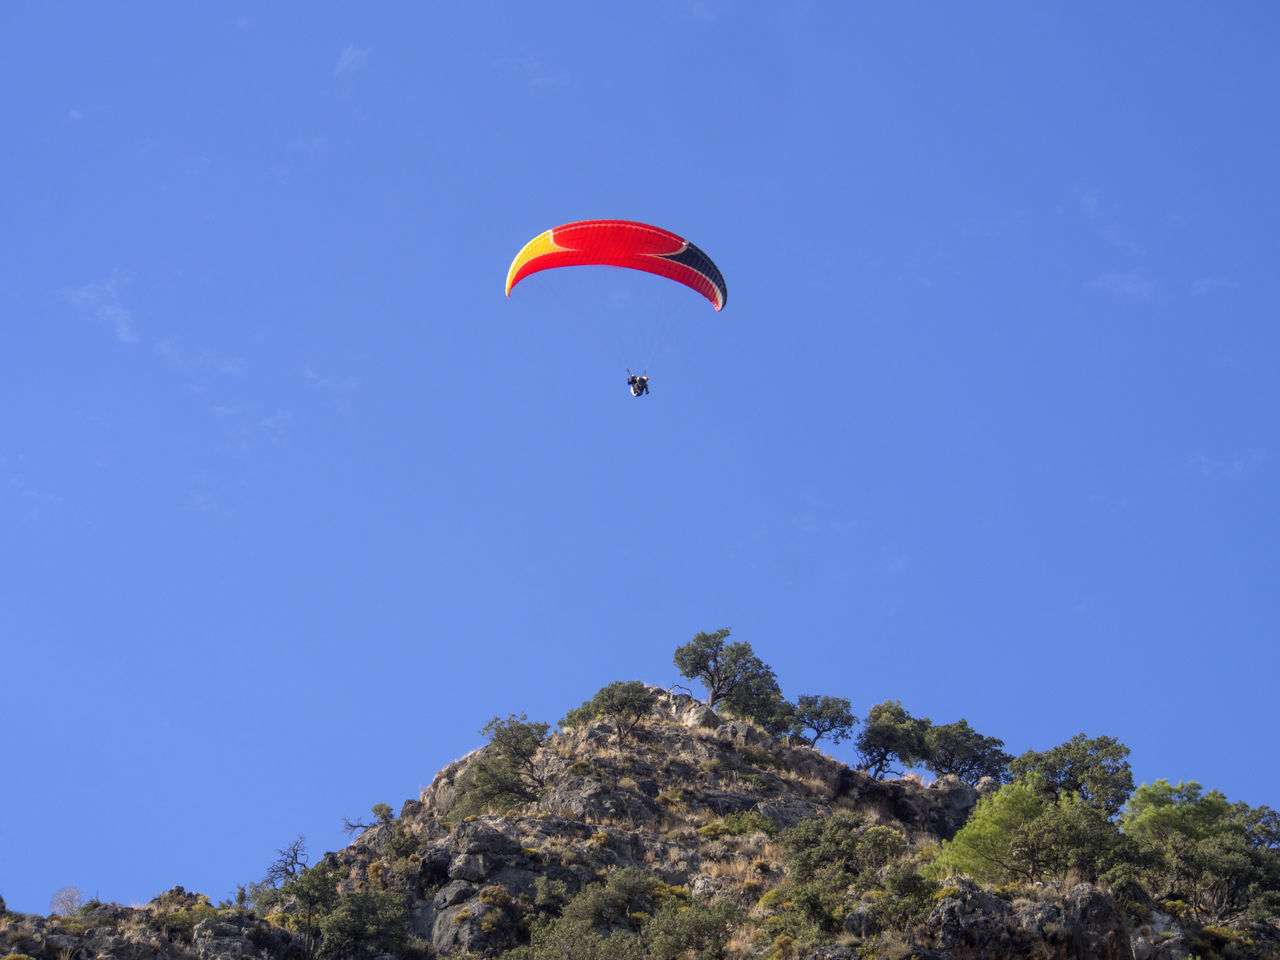 Low Angle View Of Person Paragliding Over Mountain Against Blue Sky